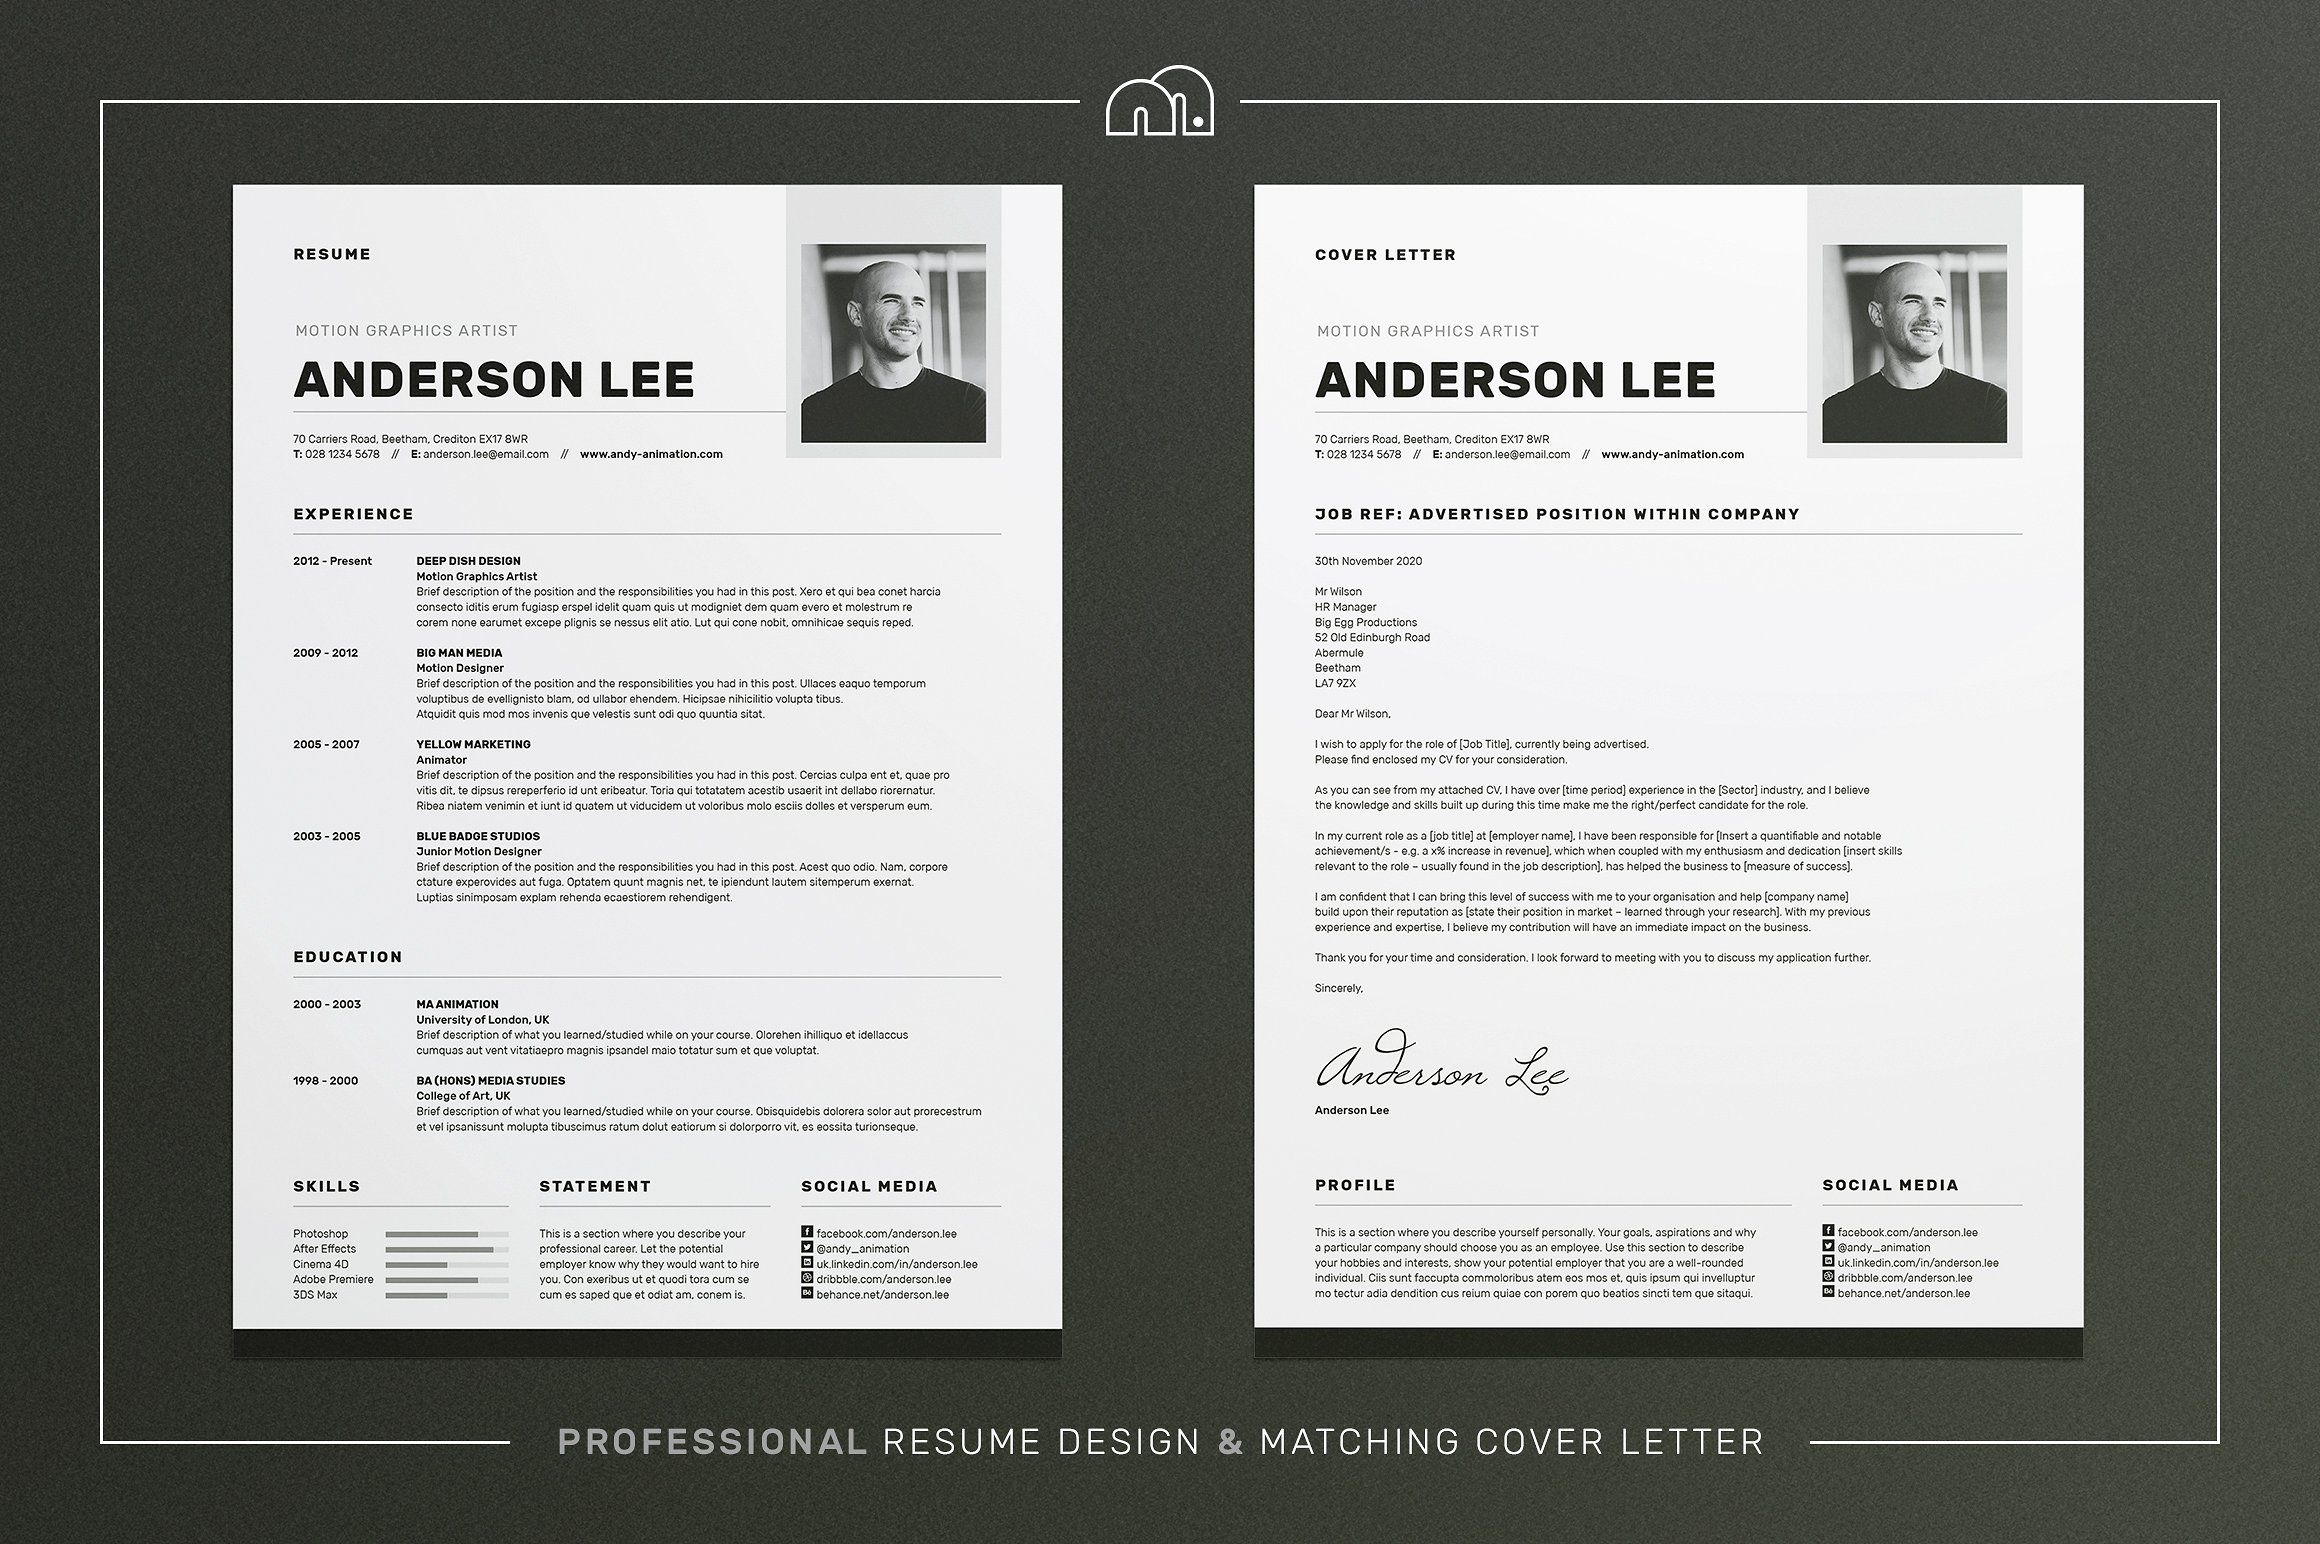 ResumeCv  Anderson By Bilmaw Creative On Creativemarket